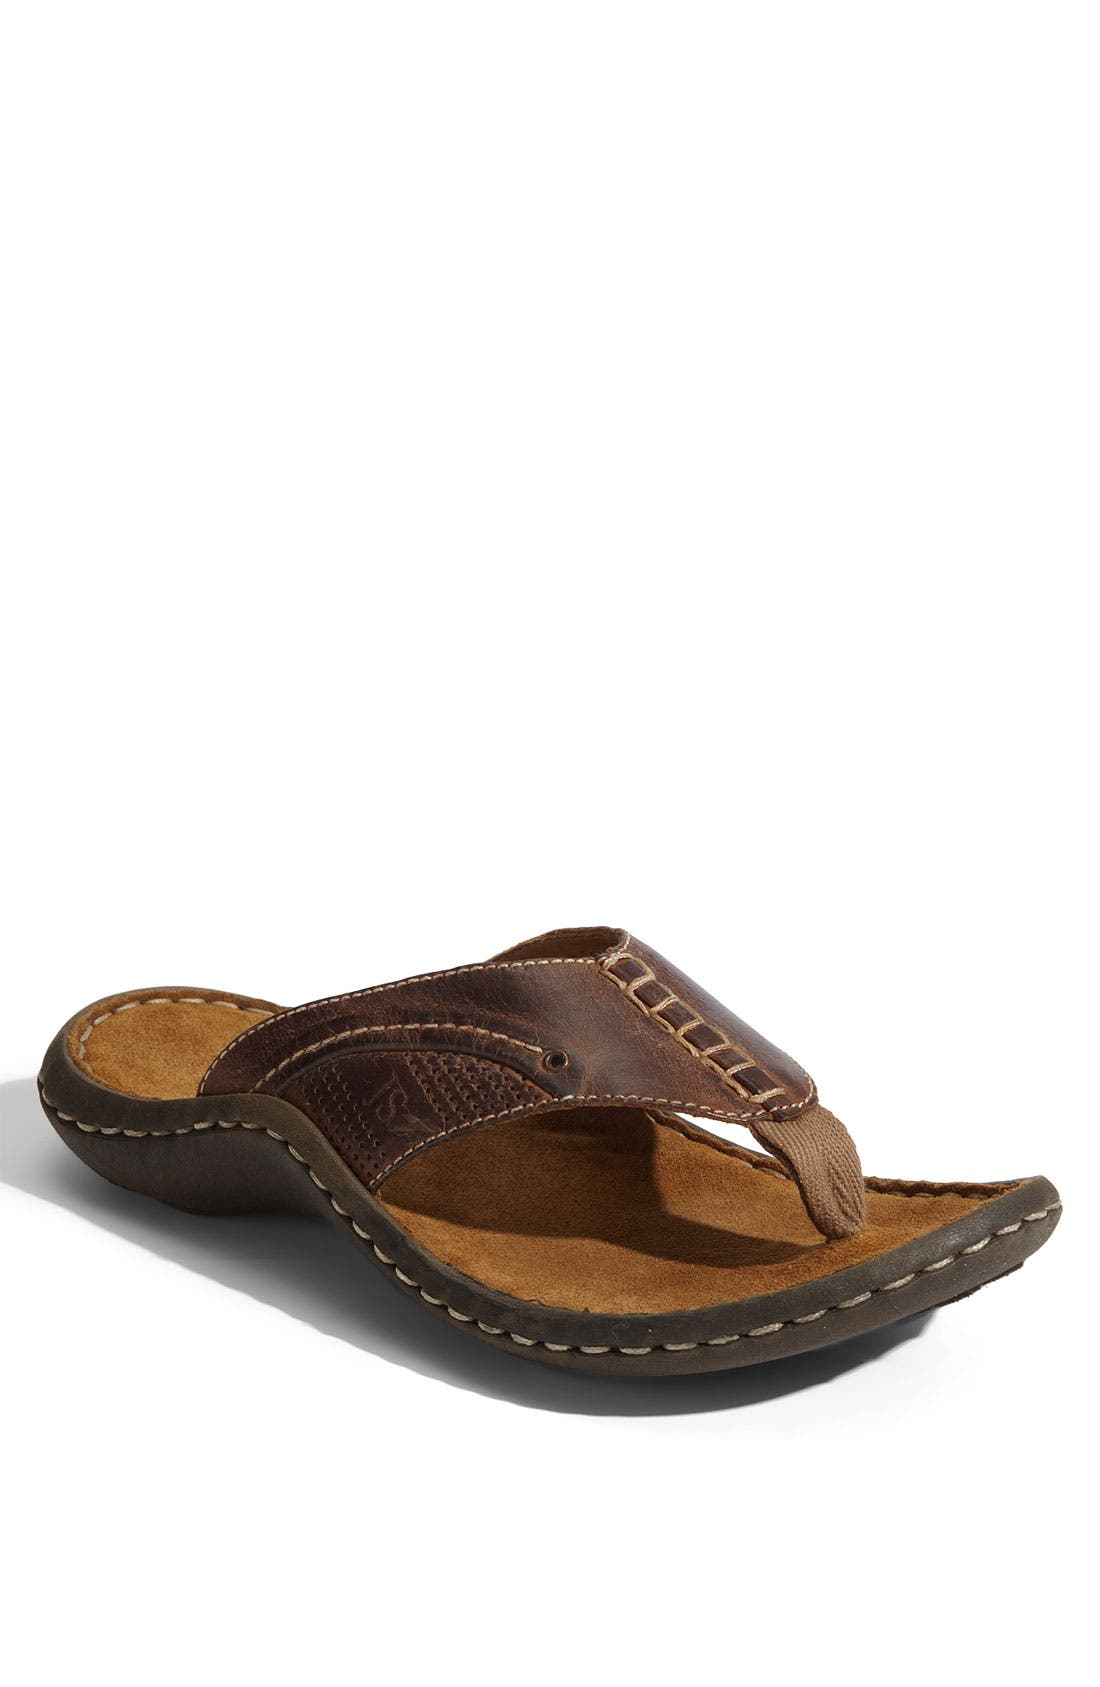 Alternate Image 1 Selected - Josef Seibel 'Lance' Flip Flop